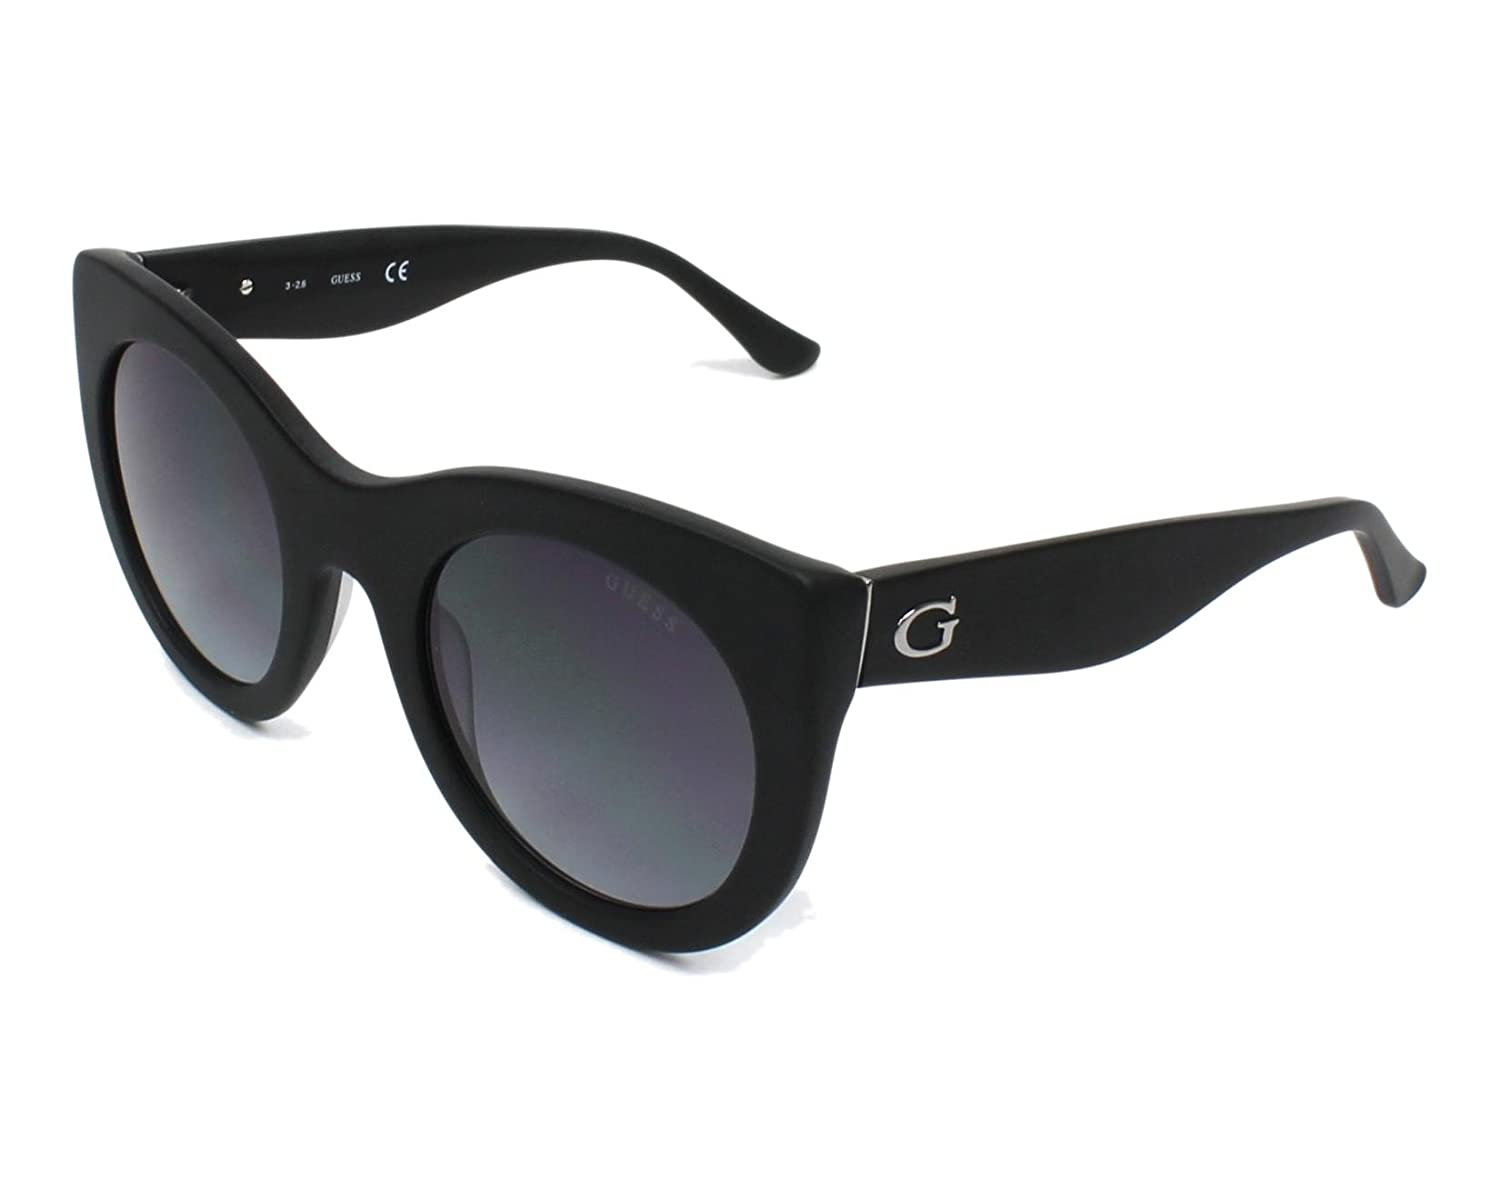 Guess Oversize Cateye Sunglasses in Shiny Black GU7485 01B 51 (Shiny Black/Smoke) GU7485-01B